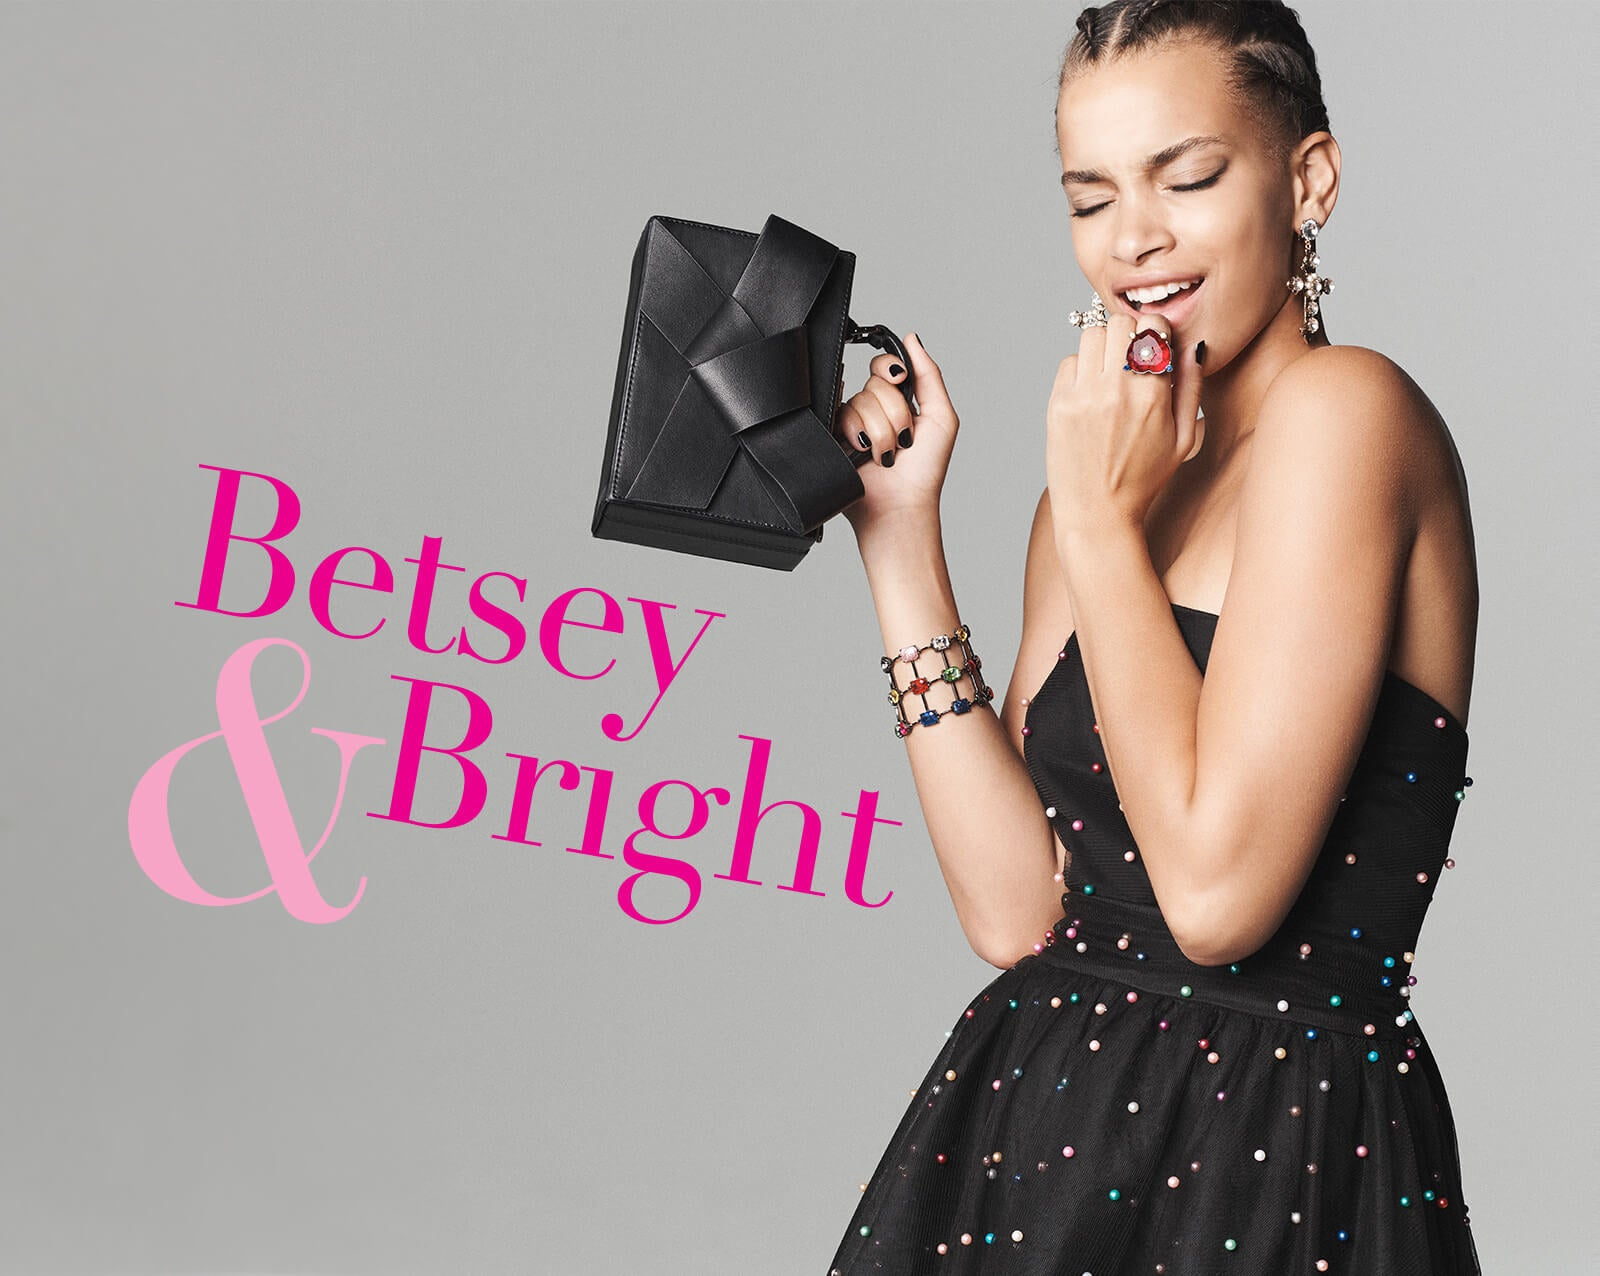 Betsey & Bright